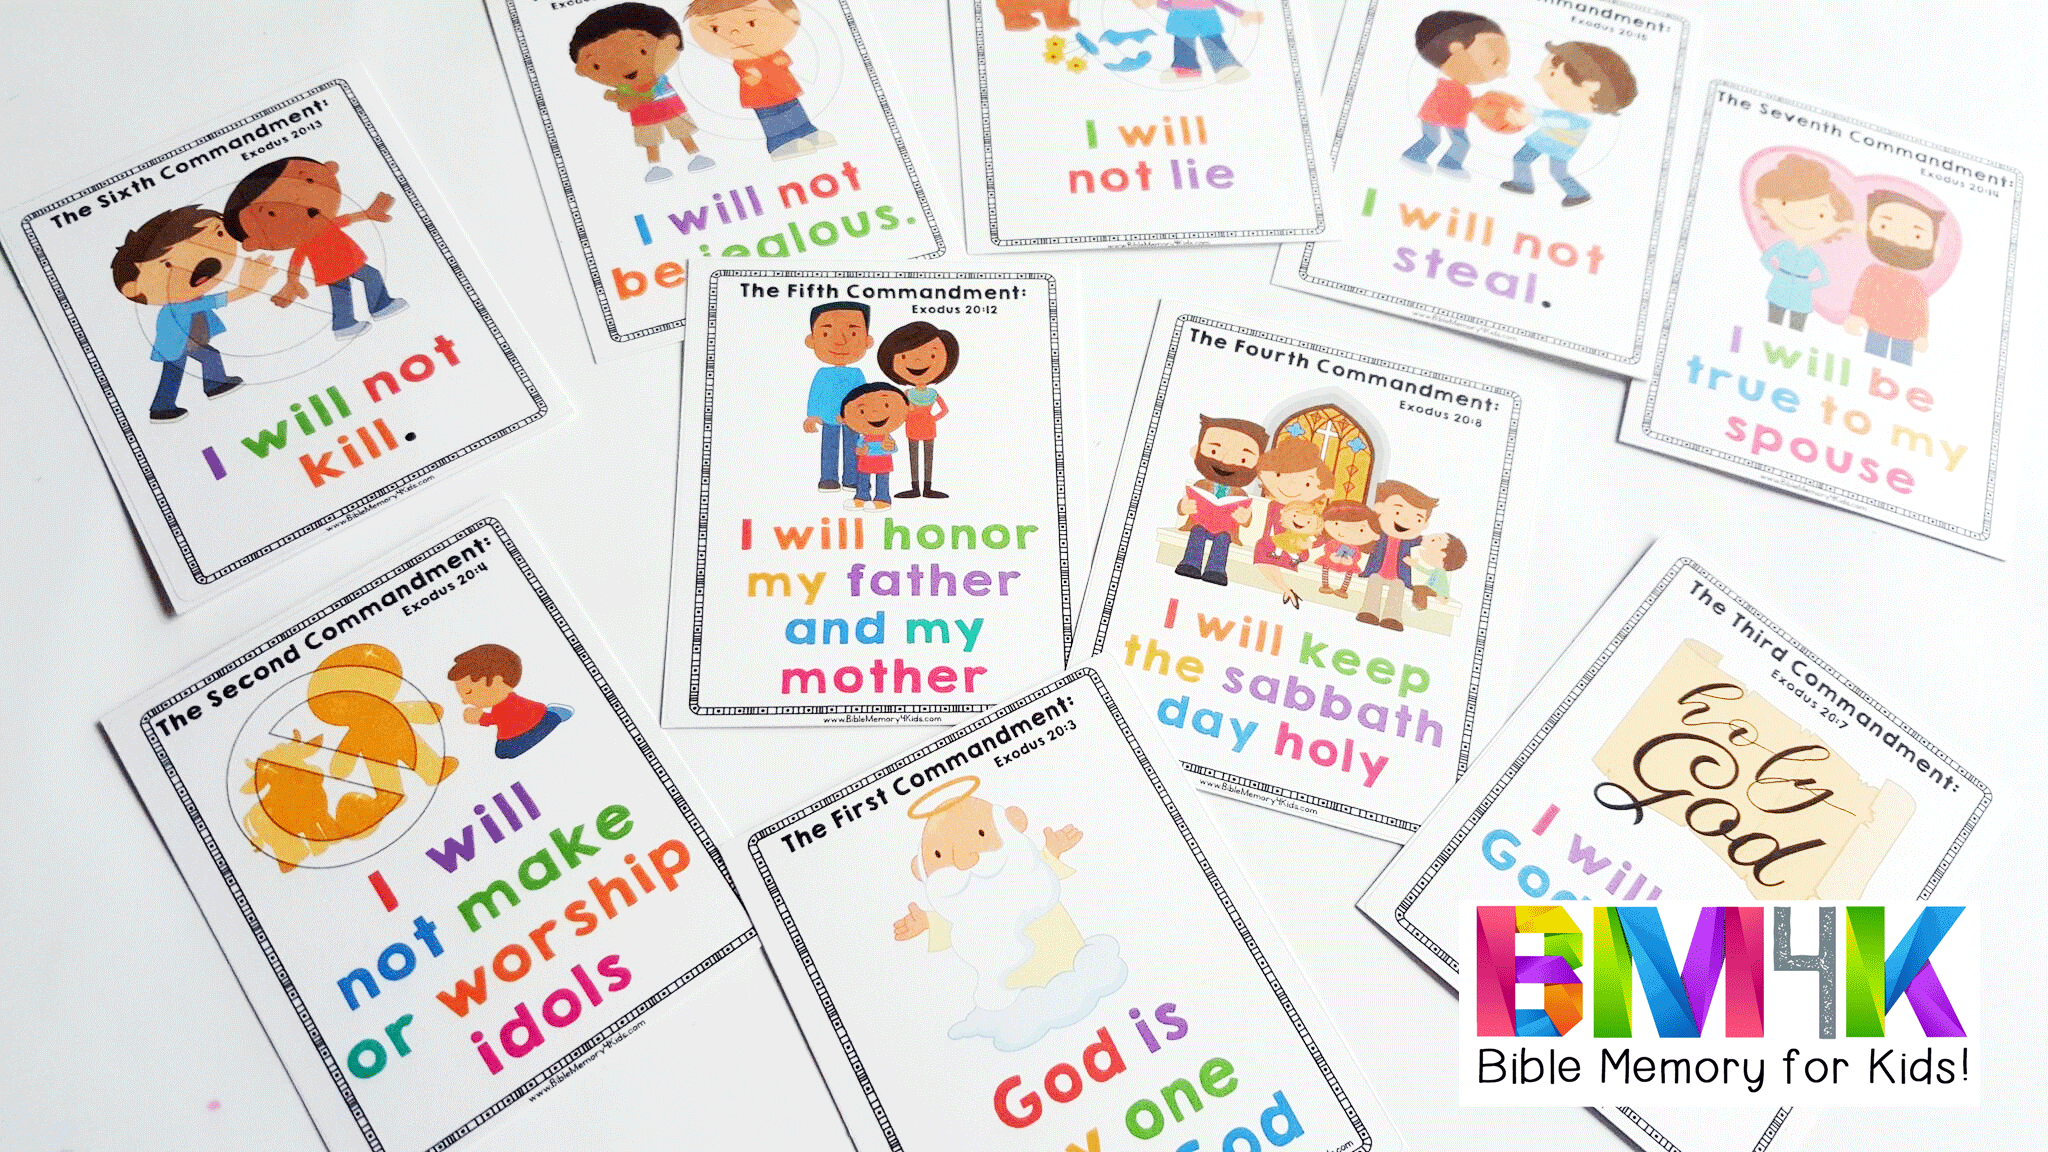 Ten commandments clipart preschooler craft, Ten commandments.